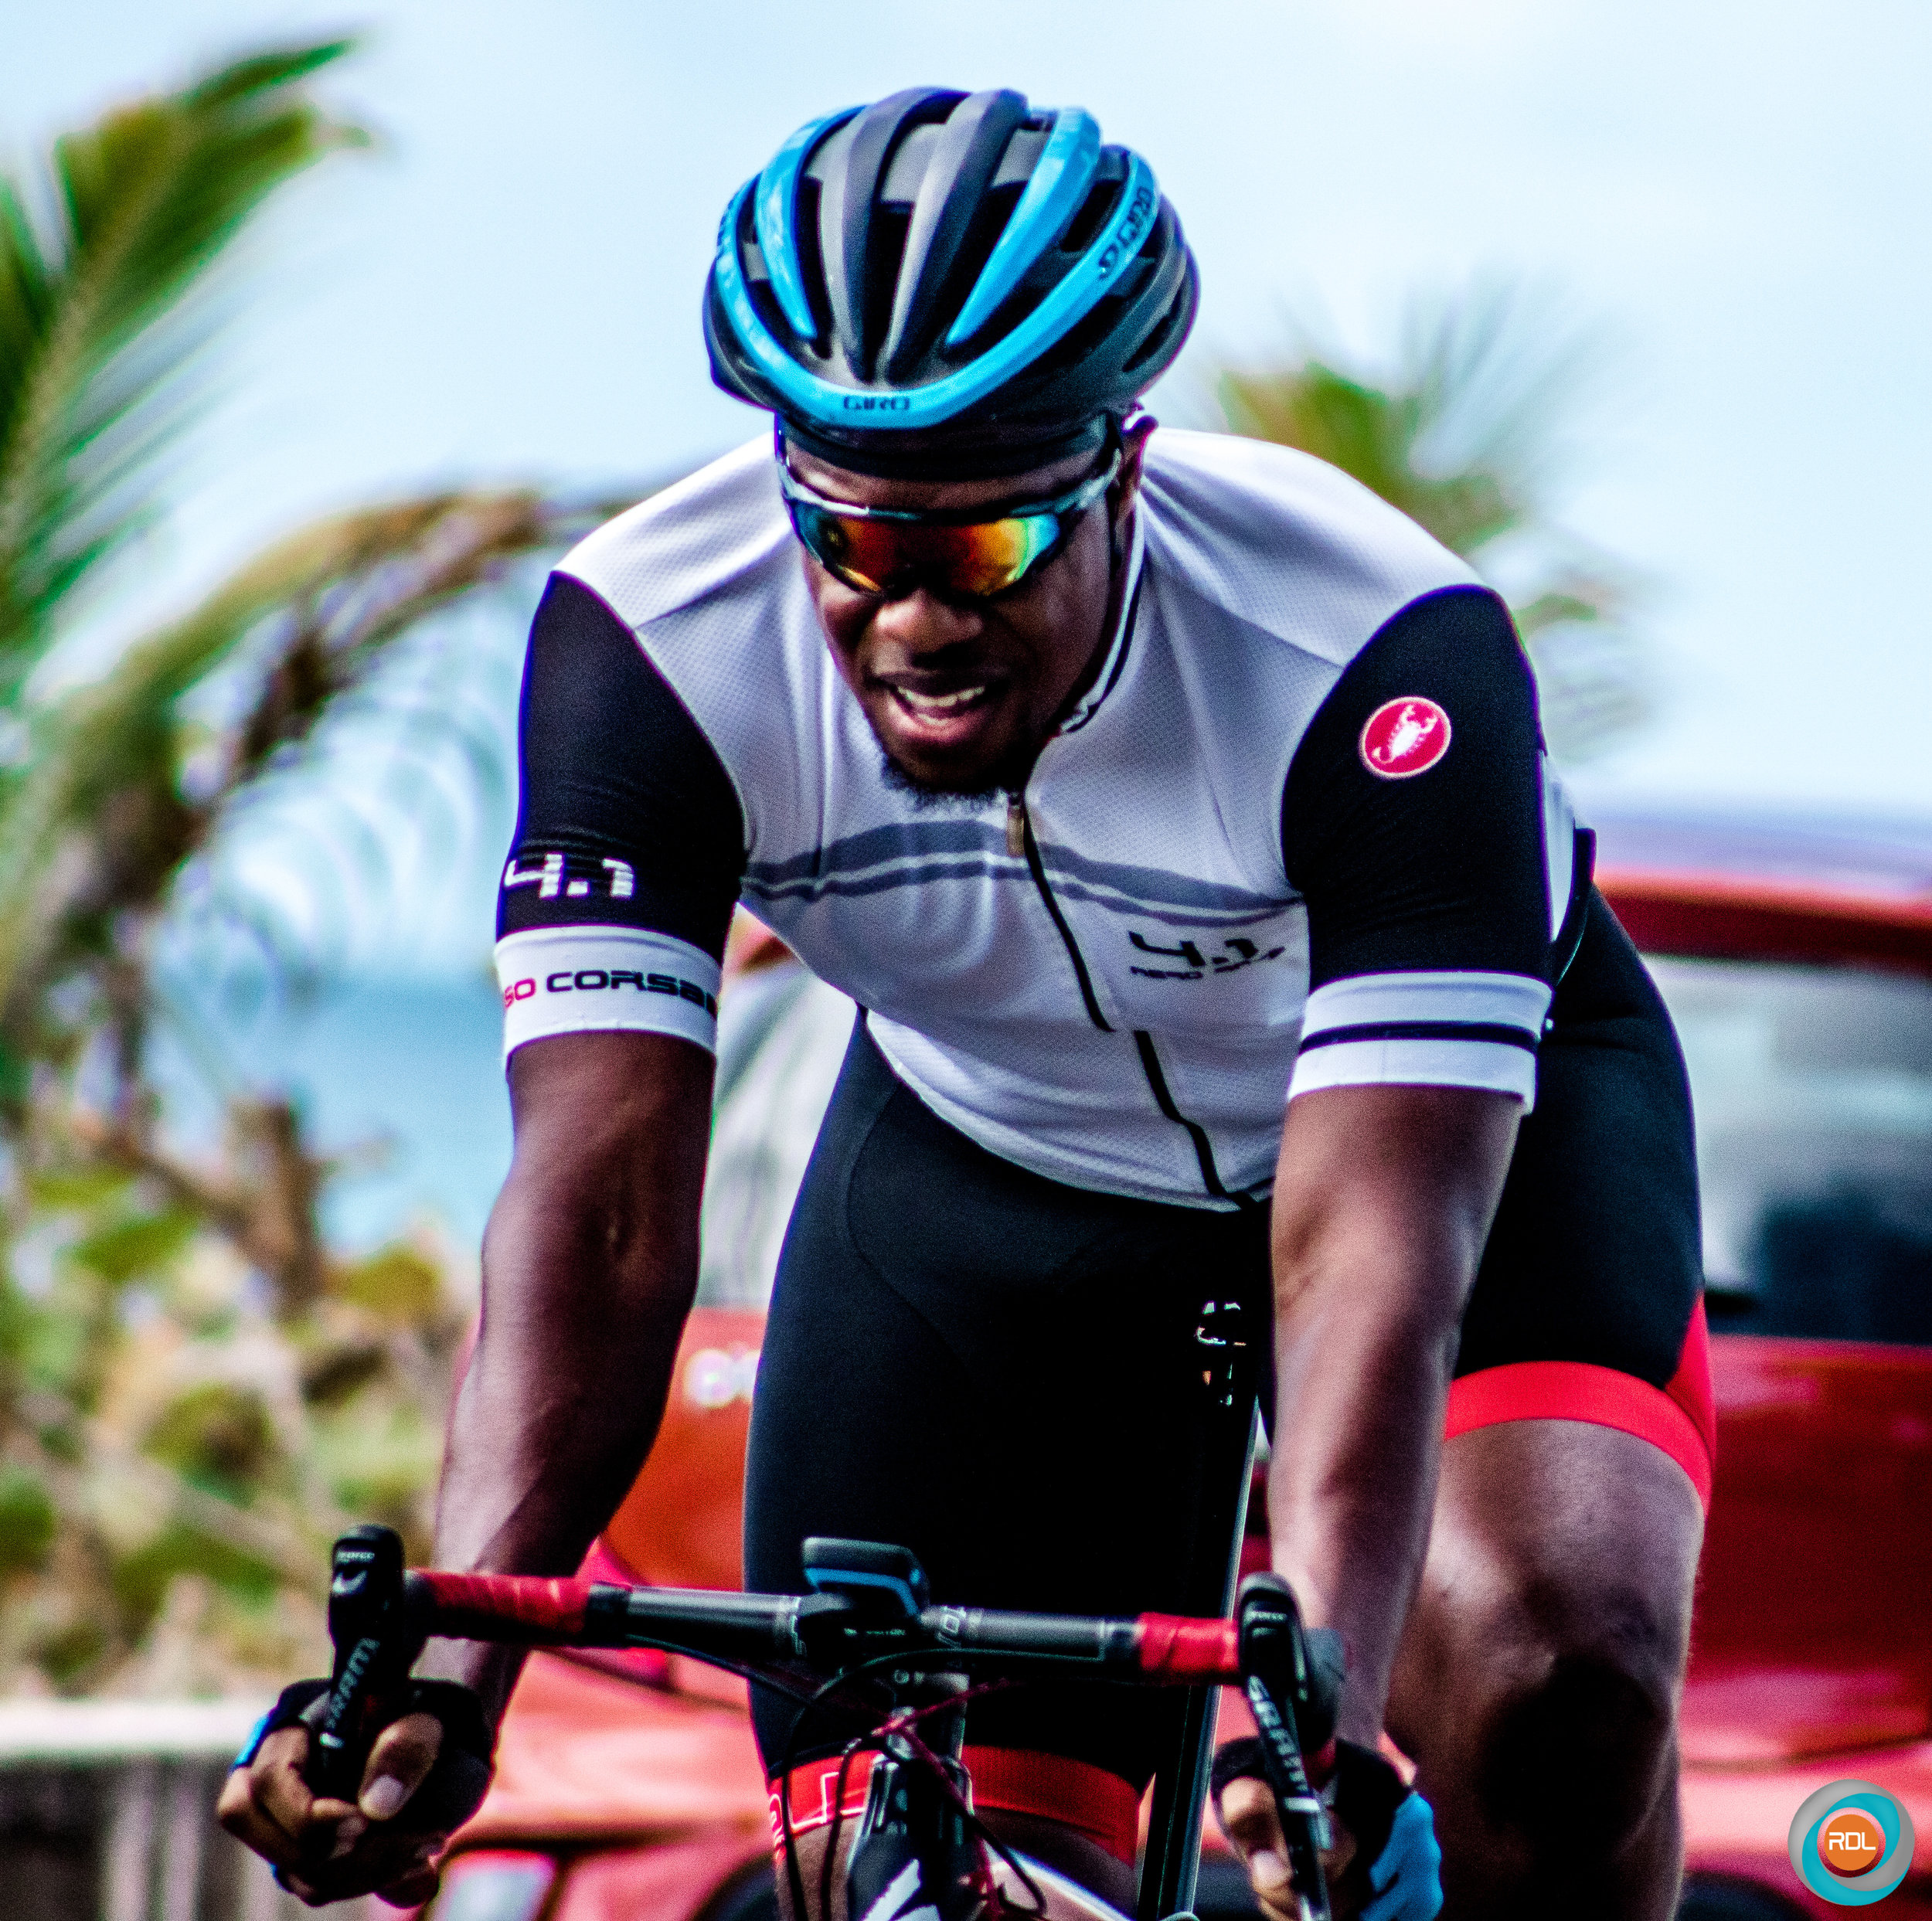 Rene Lashley looked strong. He finished second in the Masters 35-49 category behind first place winner Junior Proverbs.